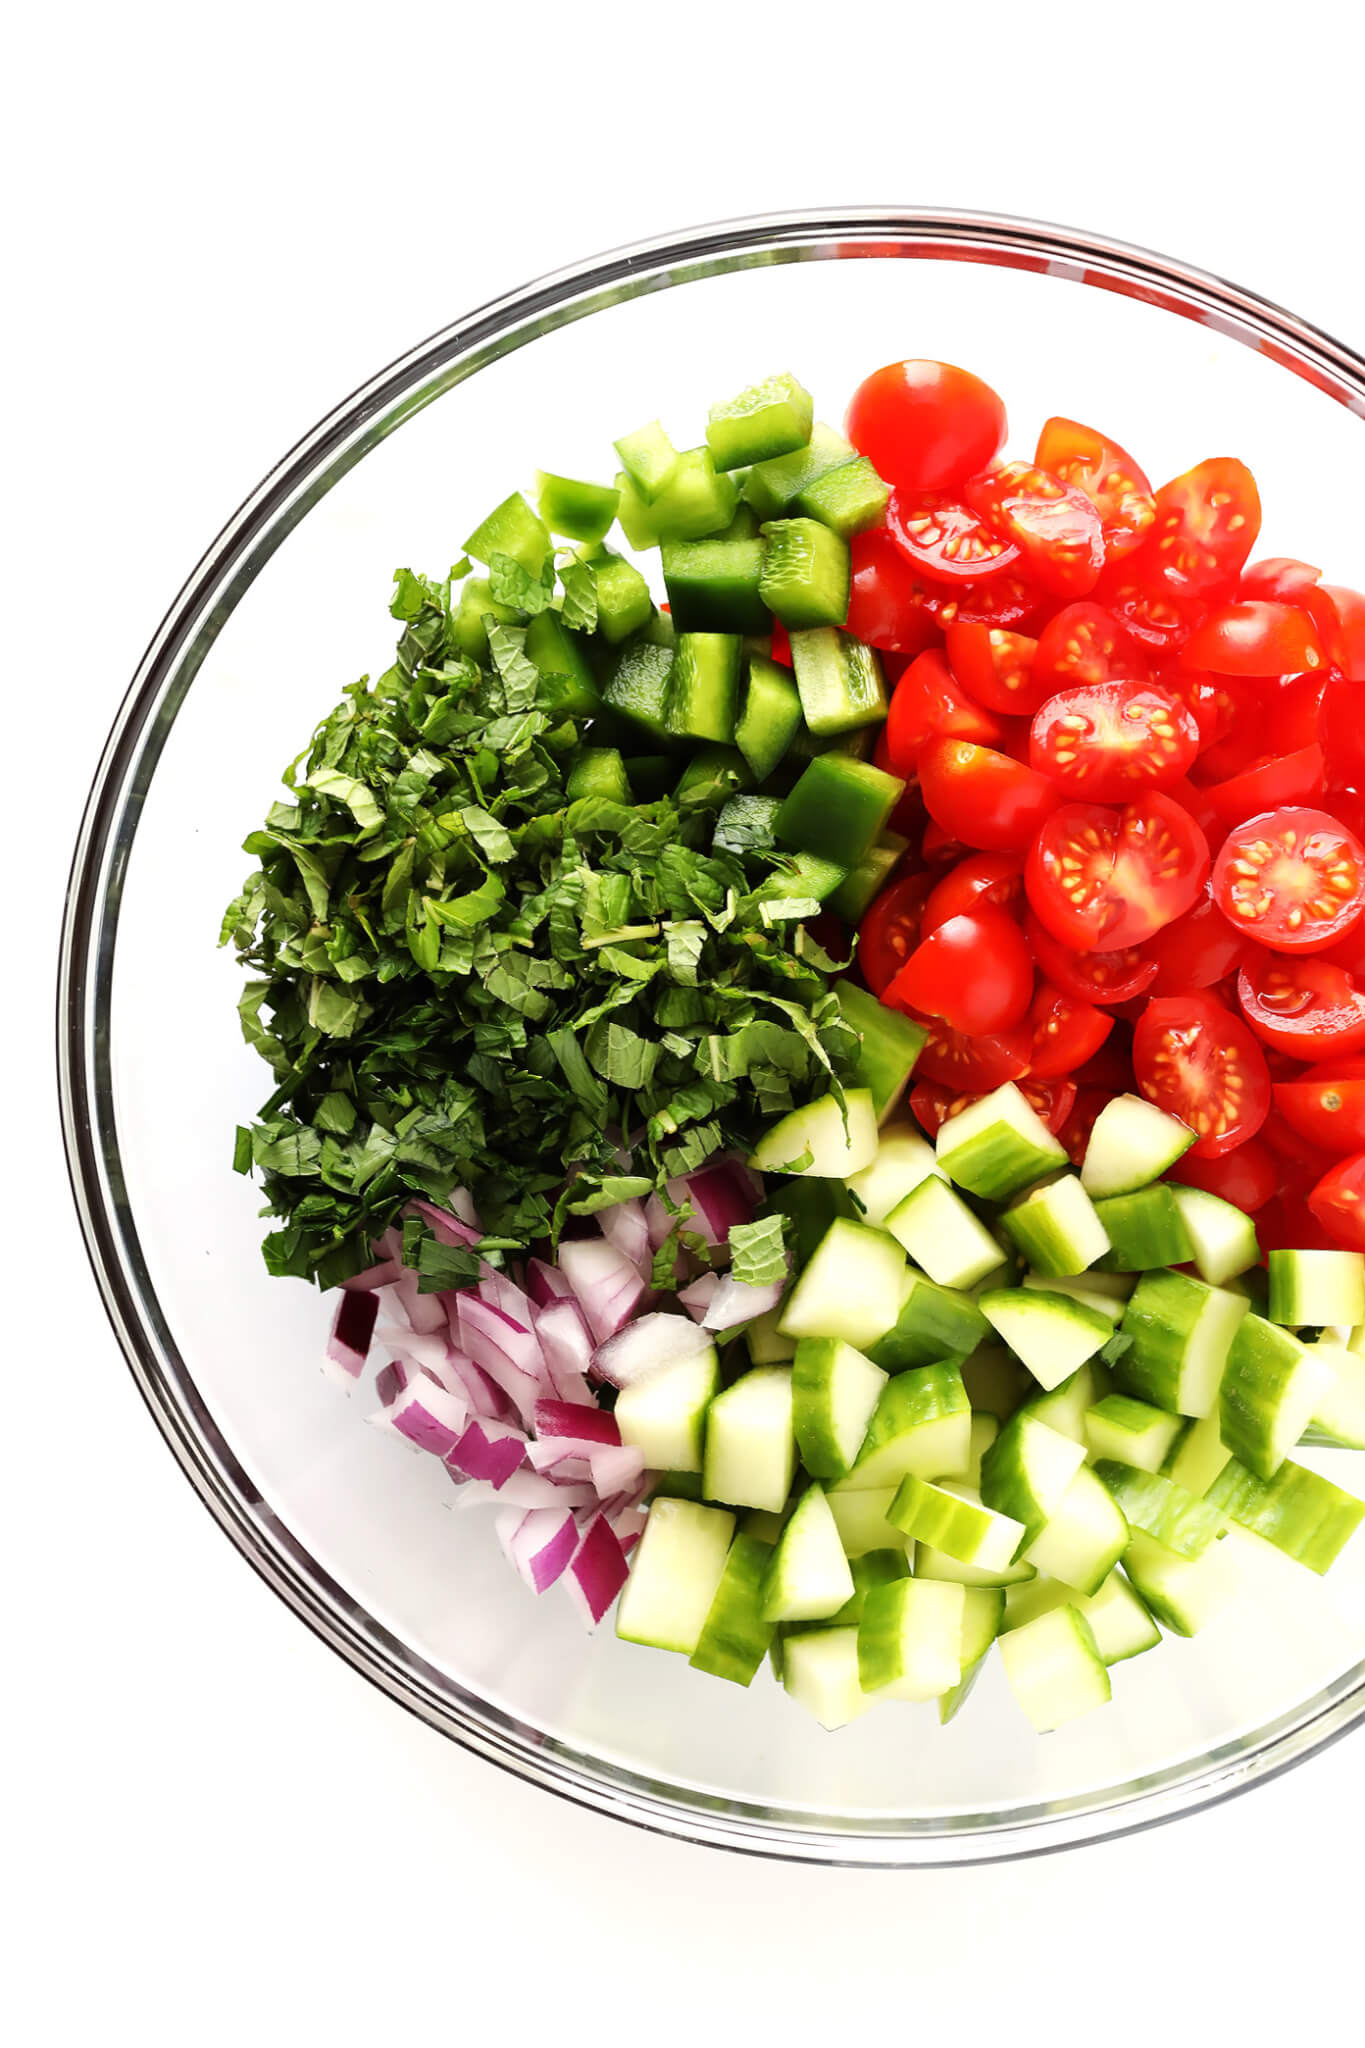 This delicious Israeli Salad recipe is quick and easy to make, full of the fresh flavors of tomatoes, cucumbers, peppers, mint, parsley and sumac, and it's so delicious! Serve it up on its own, or use it to make a simple pita wrap or hummus dip!   gimmesomeoven.com